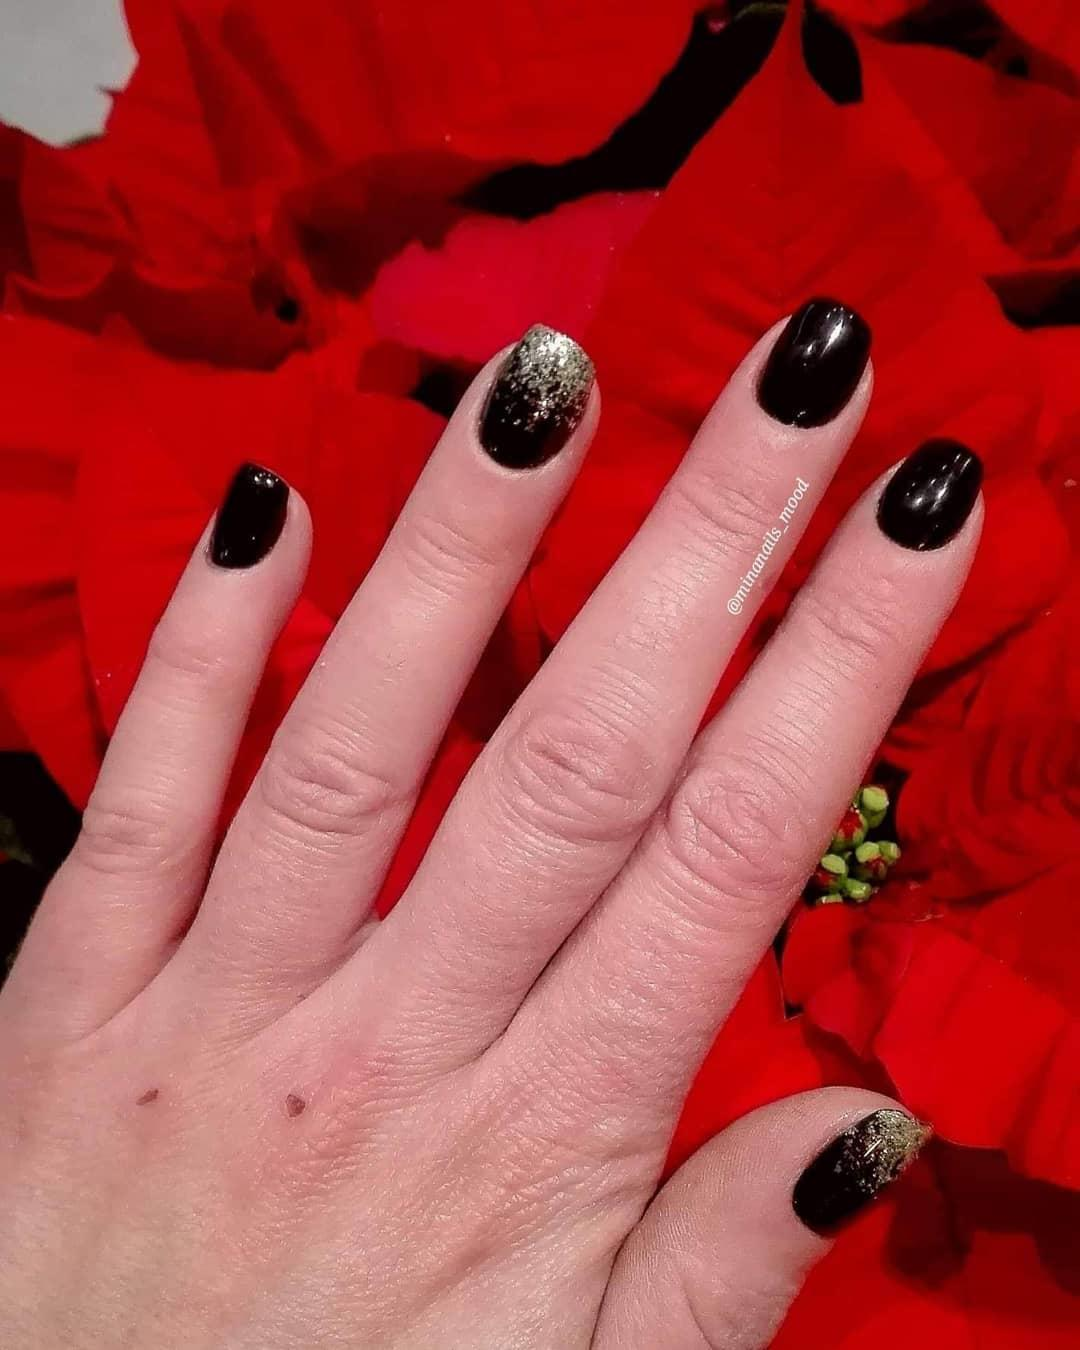 22 french manicure ideas and designs 2019 14 - 22 French Manicure Ideas and Designs 2019